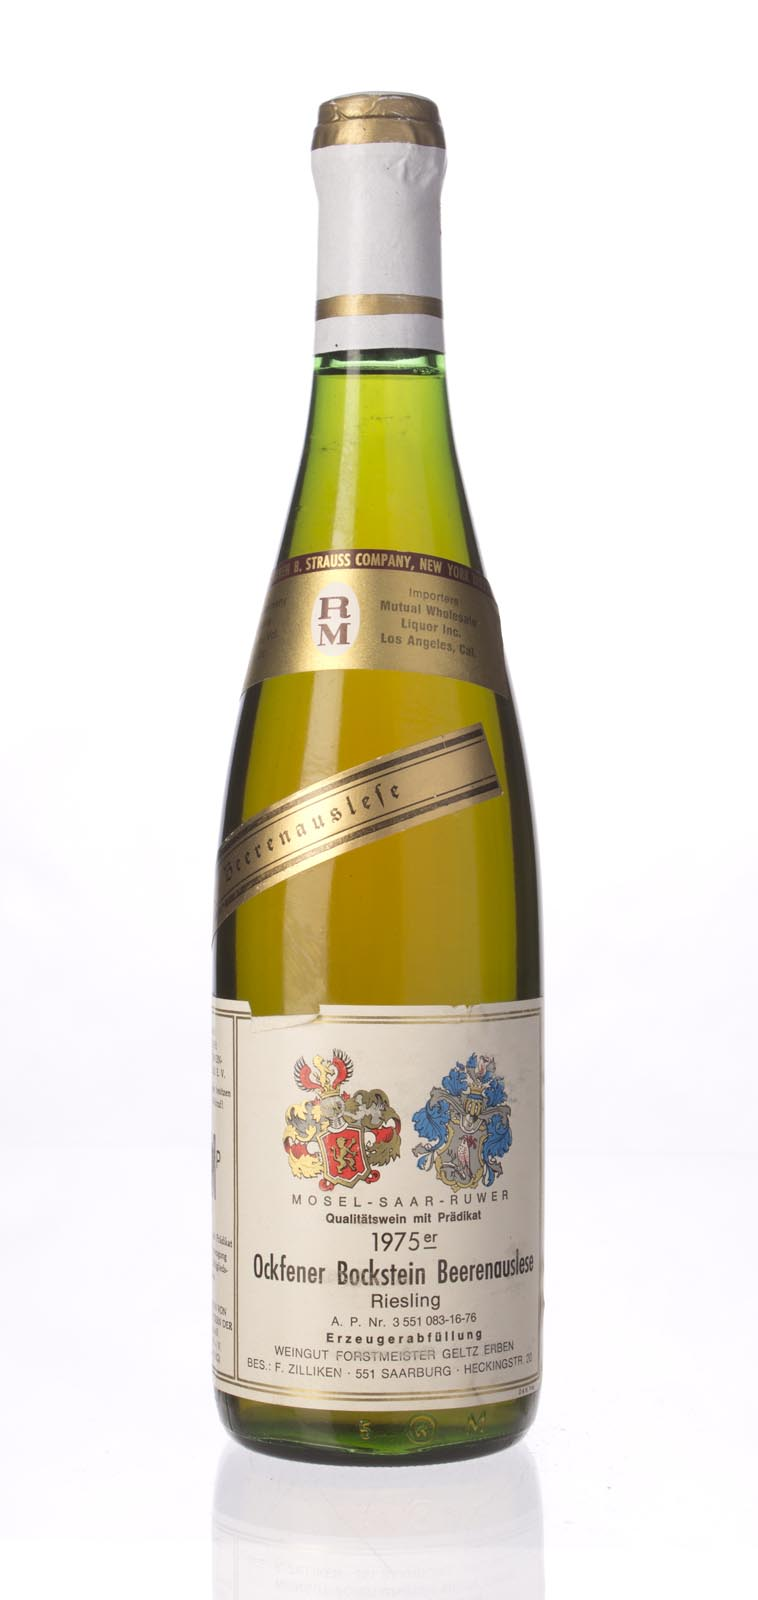 Zilliken Ockfener Bockstein Riesling Beerenauslese 1975, 750mL () from The BPW - Merchants of rare and fine wines.